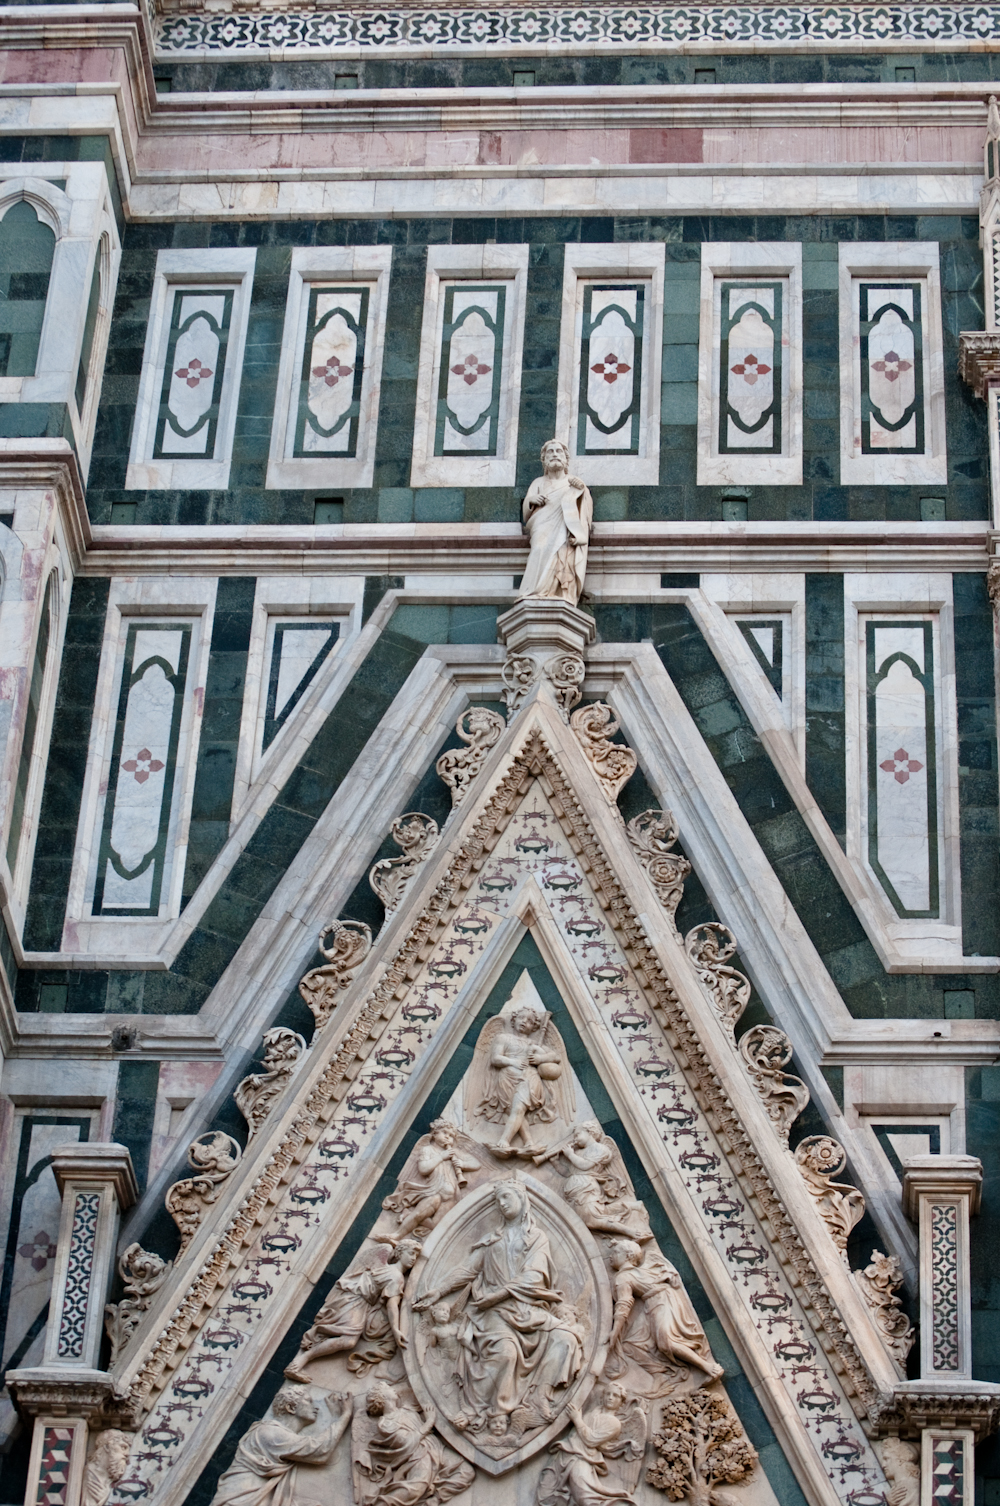 The cathedrals original facade was dismantled in 1588 and replaced with a colorful Neo-Gothic facade clad with white, green, and pink Tuscan marble.